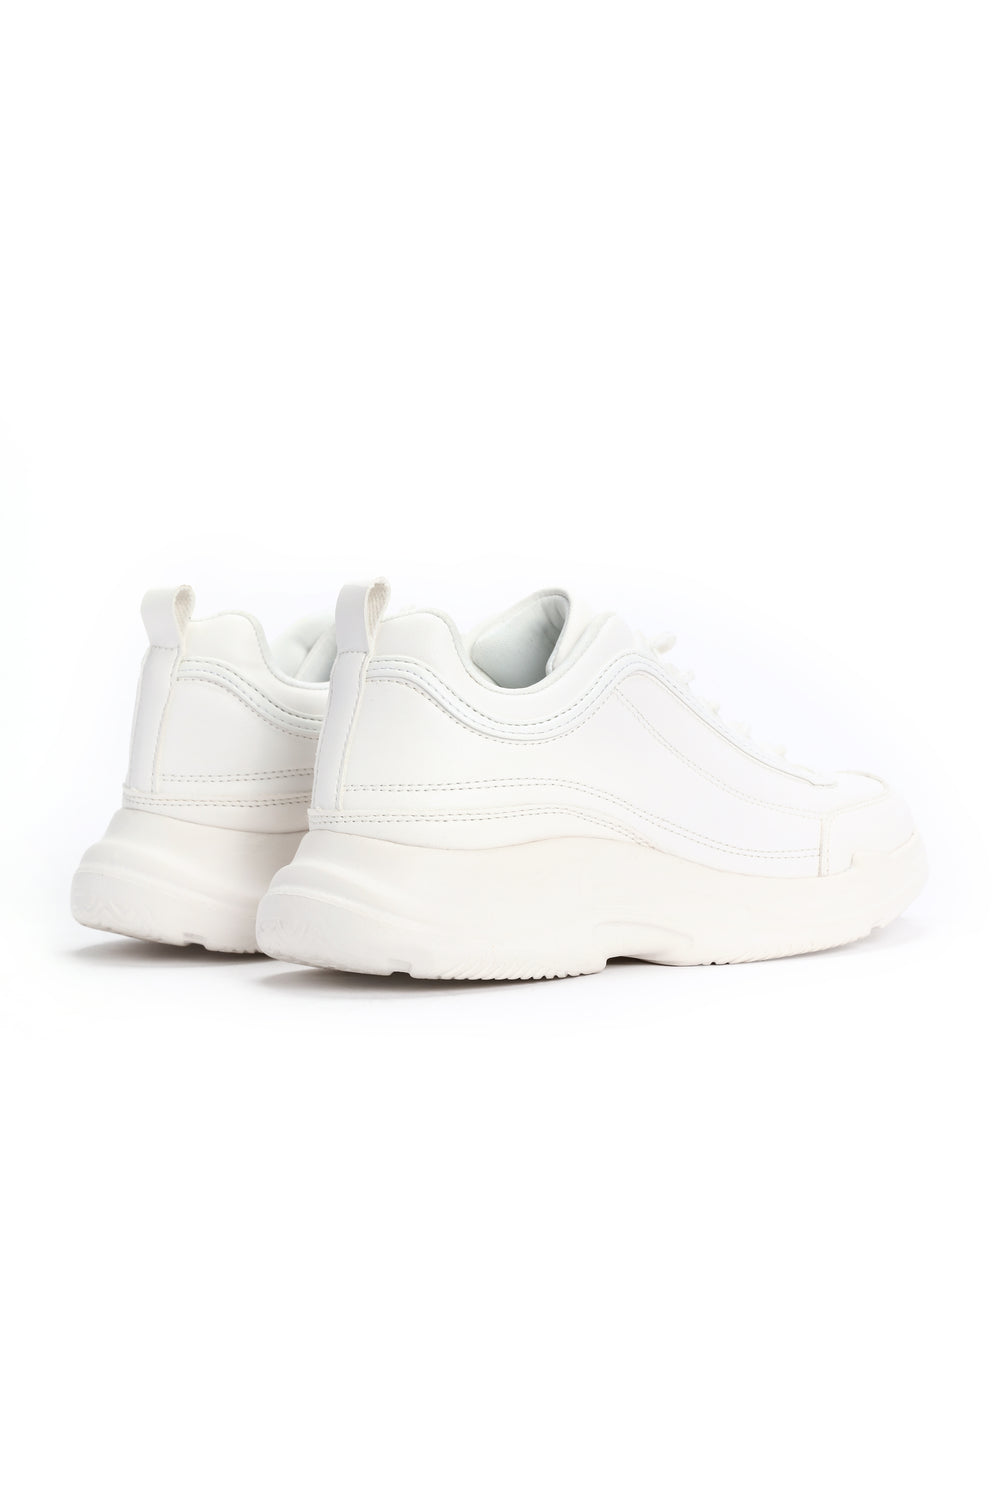 Born In The 90's Sneakers - White